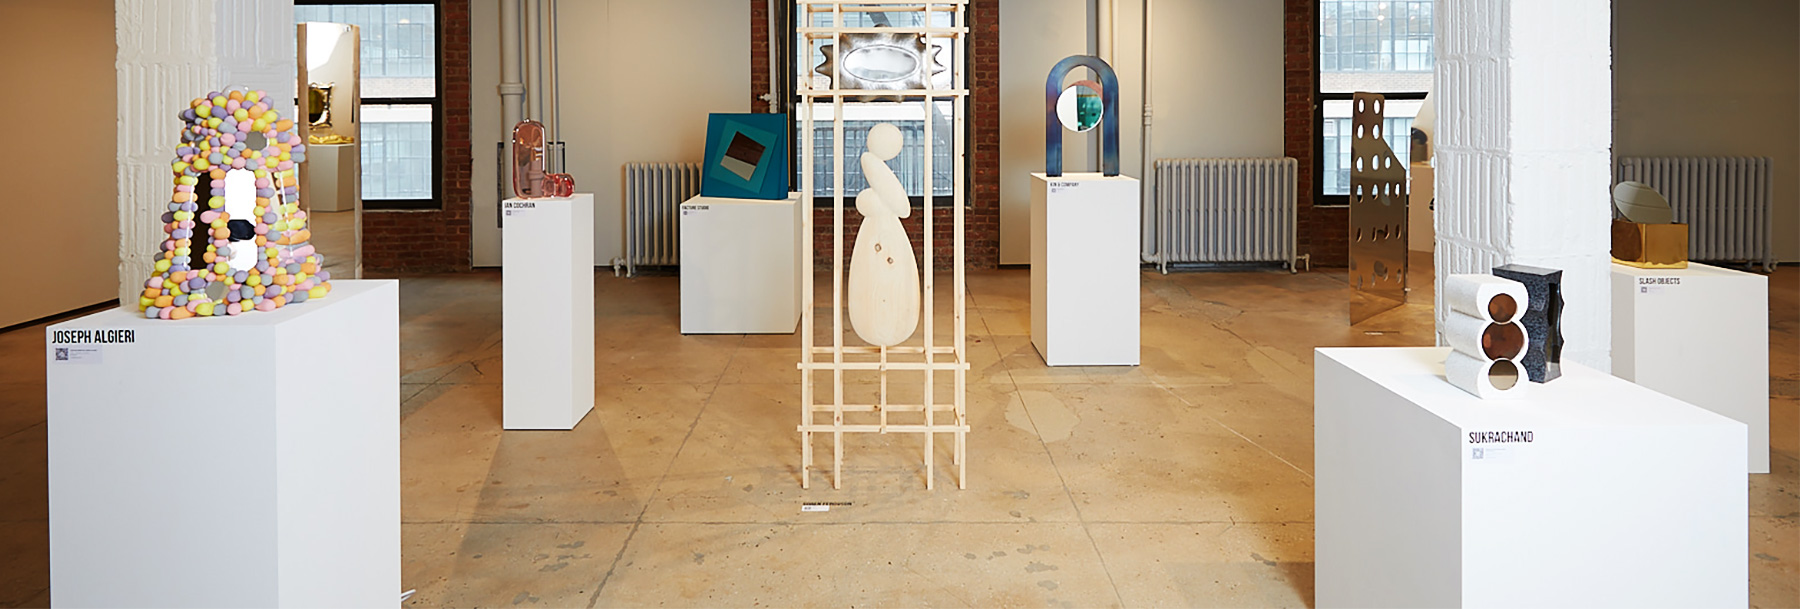 Object Permanence at the 1stdibs Gallery